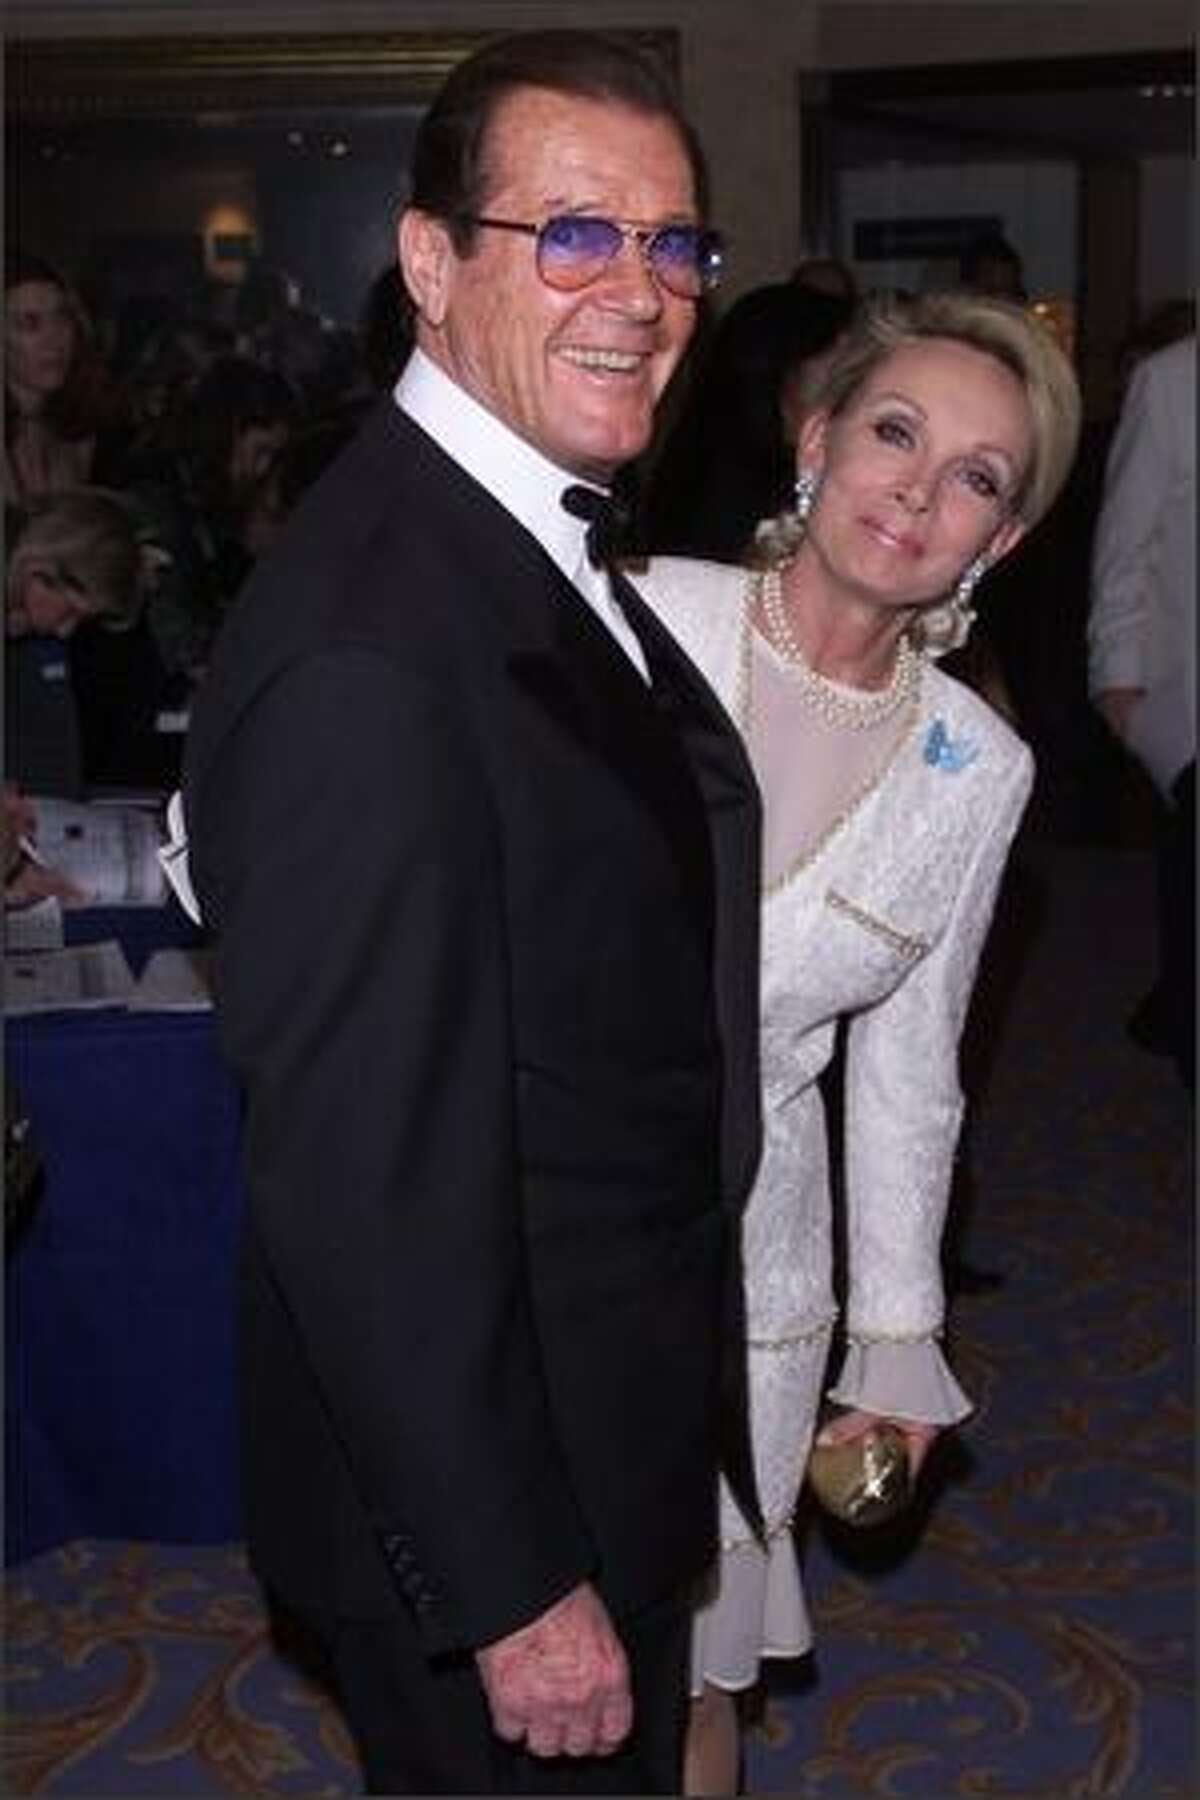 British actor Roger Moore and his girlfriend at Muhammad Ali's 59th birthday celebration at the Hilton Hotel, Park Lane, London on January 17th 2001.